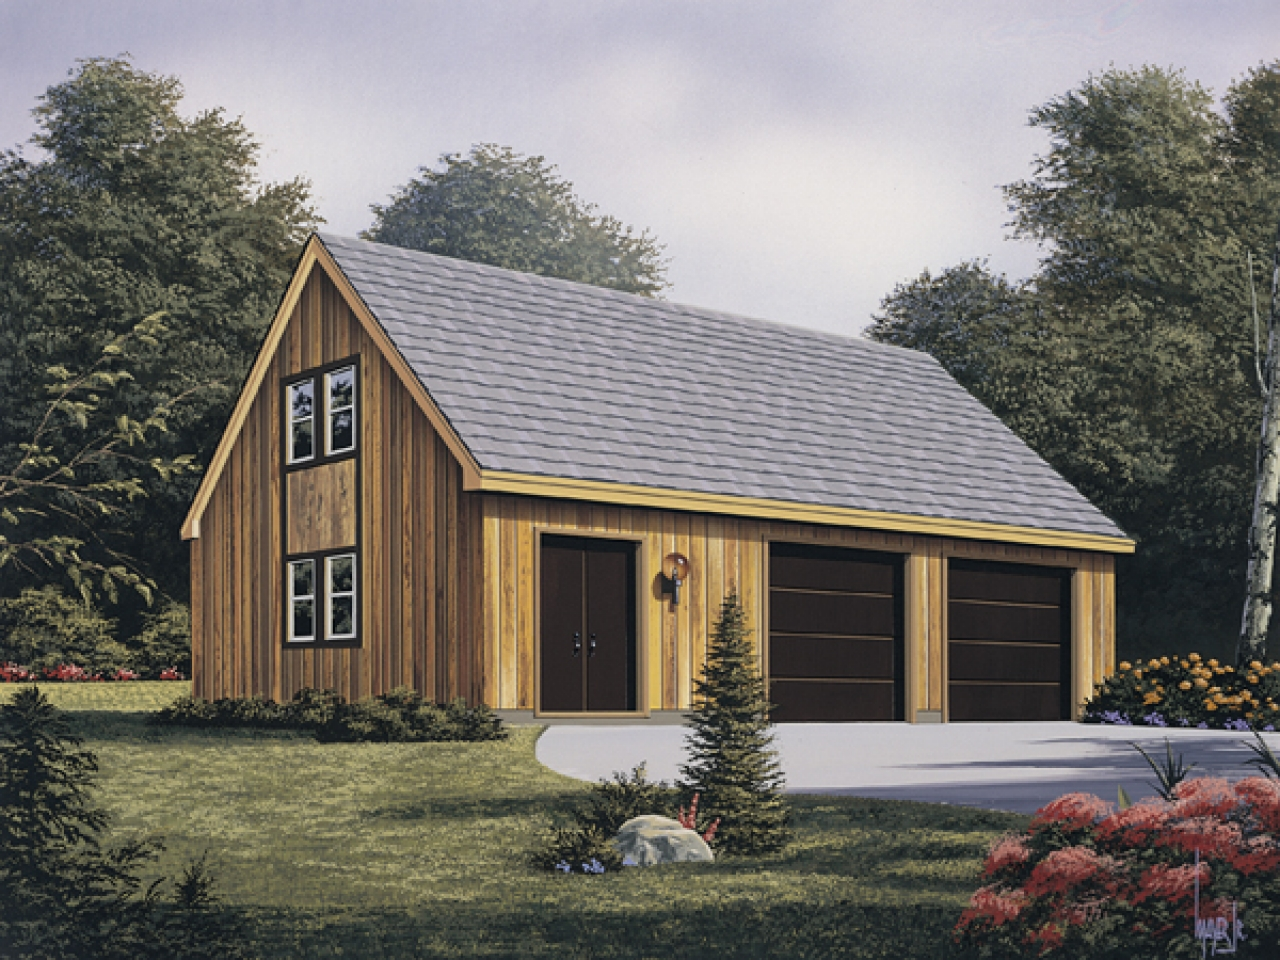 2 Car Garage Plans Garage With Workshop Plans, Rustic